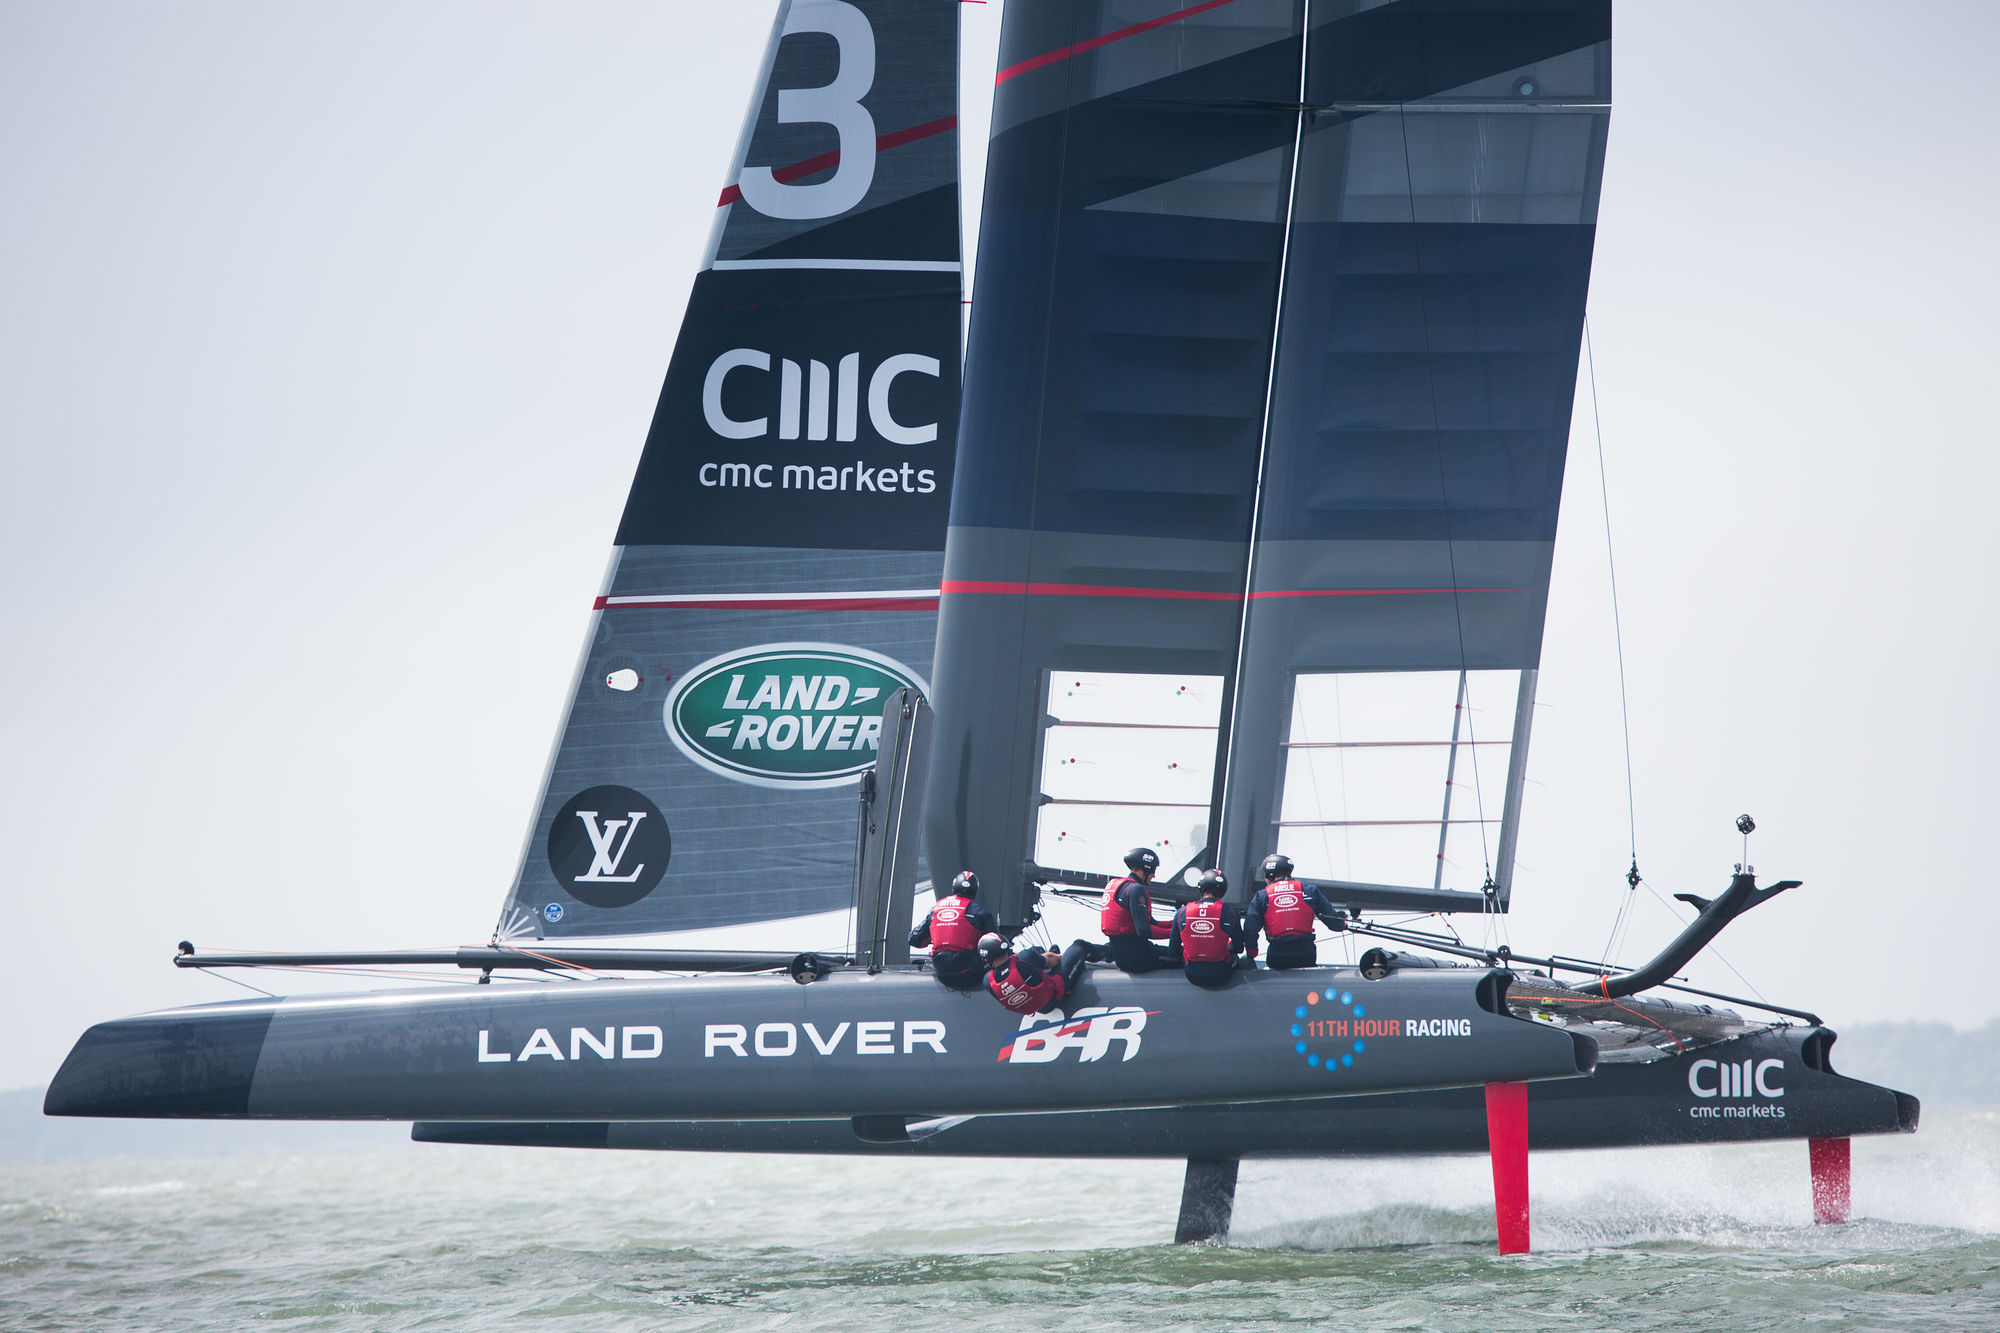 America's Cup: Ben Ainslie's World Series-winning catamaran up for sale